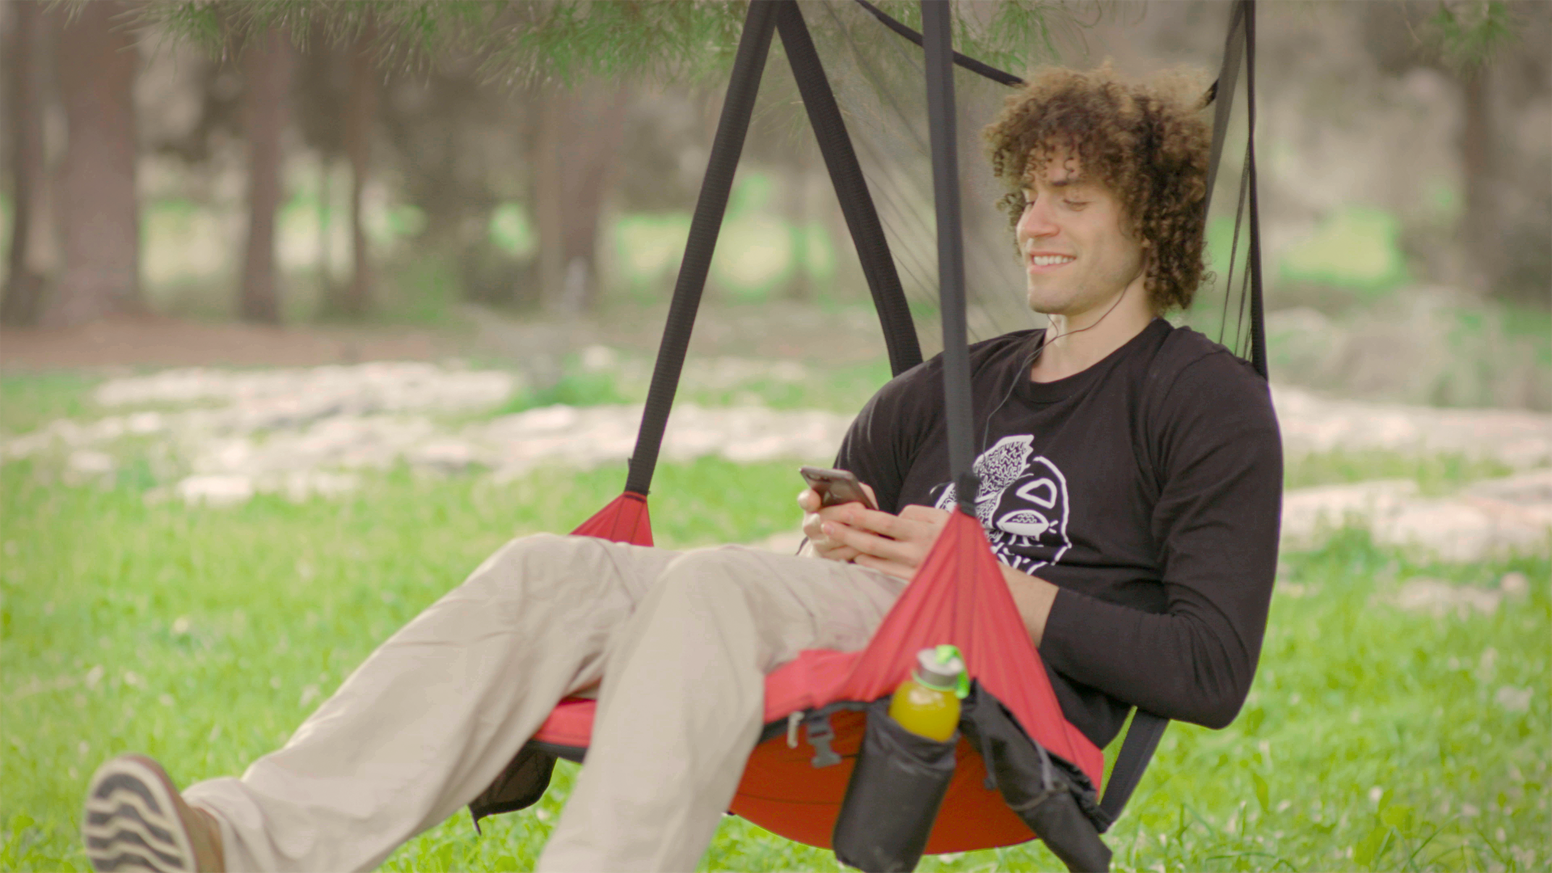 HoverChair is a light, portable, and super-comfortable hanging chair designed to help you relax in style... No matter where you are.